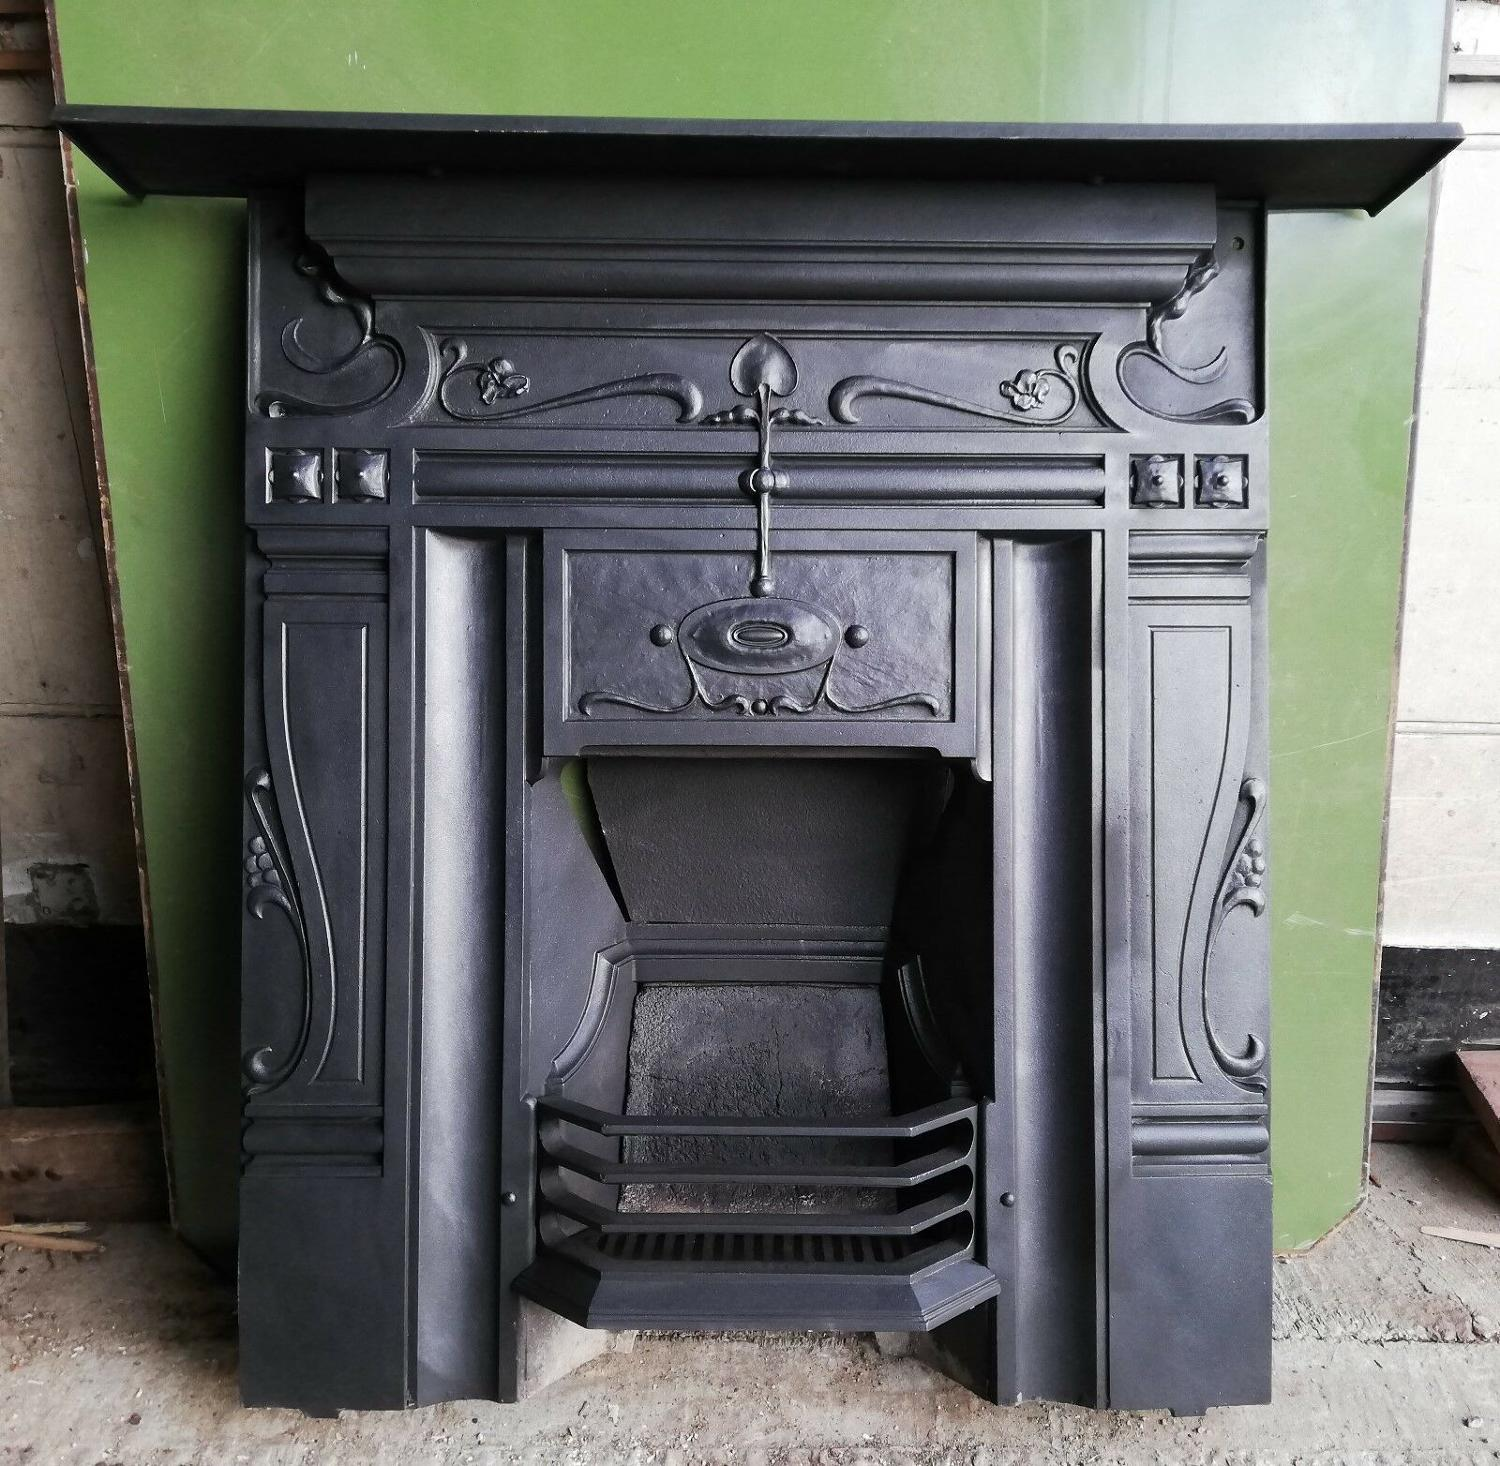 FC0044 AN ART NOUVEAU CAST IRON COMBINATION FIRE